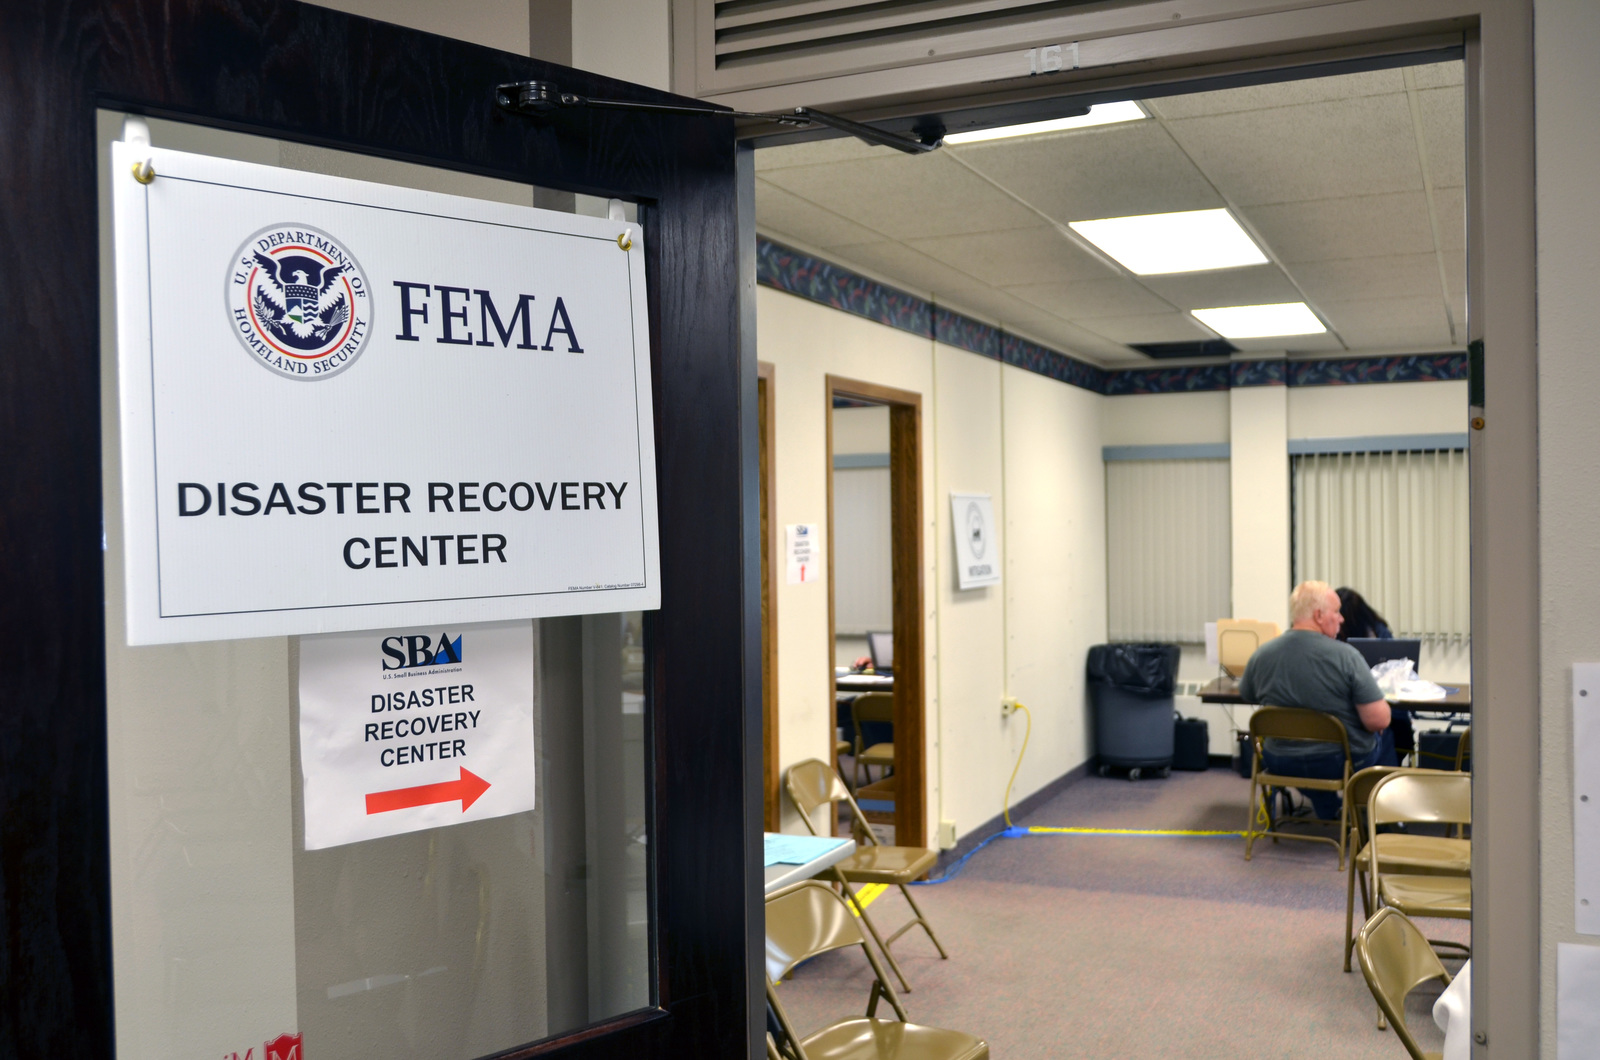 Flooding - Minot, N. D. , July 6, 2011 -- Disaster Assistance Center in Minot, North Dakota. FEMA is supporting the emergency management team in providing disaster assistance to those affected by the flooding. Photo by: David Valdez/FEMA